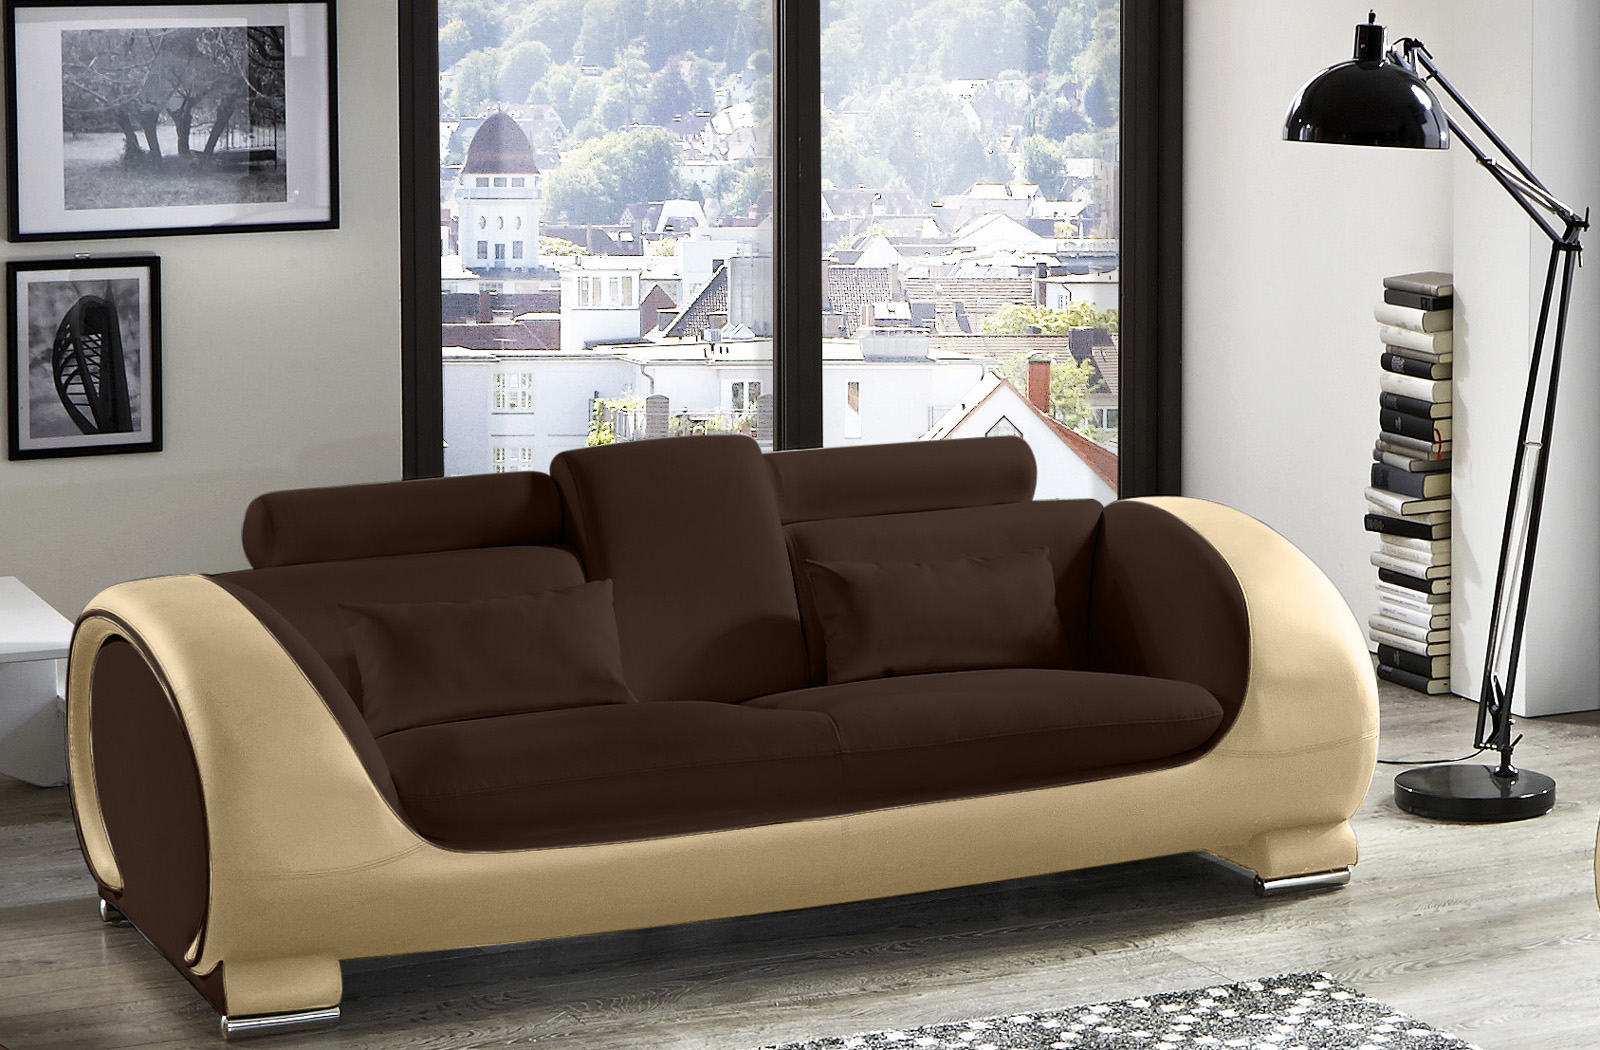 sam 2 3 sitzer sofa garnitur 2tlg in braun creme vigo. Black Bedroom Furniture Sets. Home Design Ideas